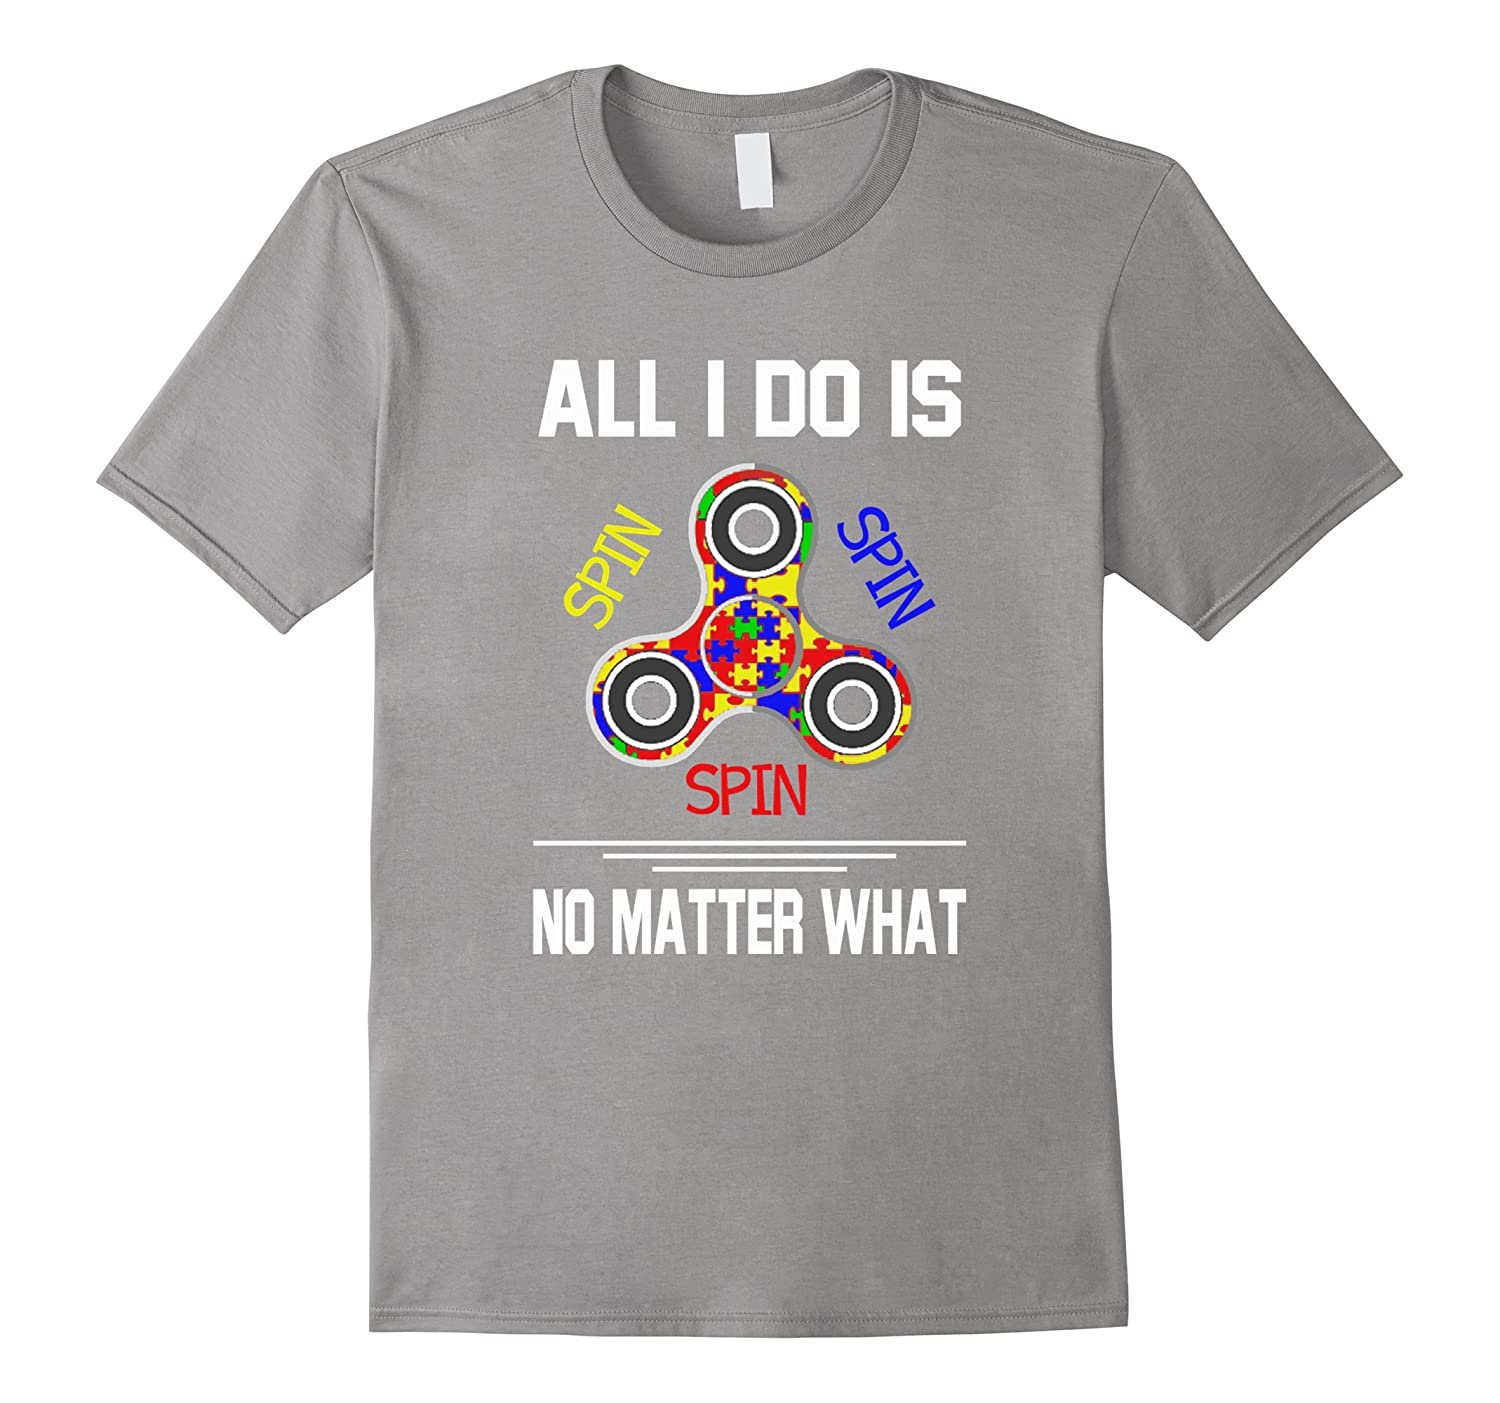 All i do is spin spin spin no matter what T-shirt-Art